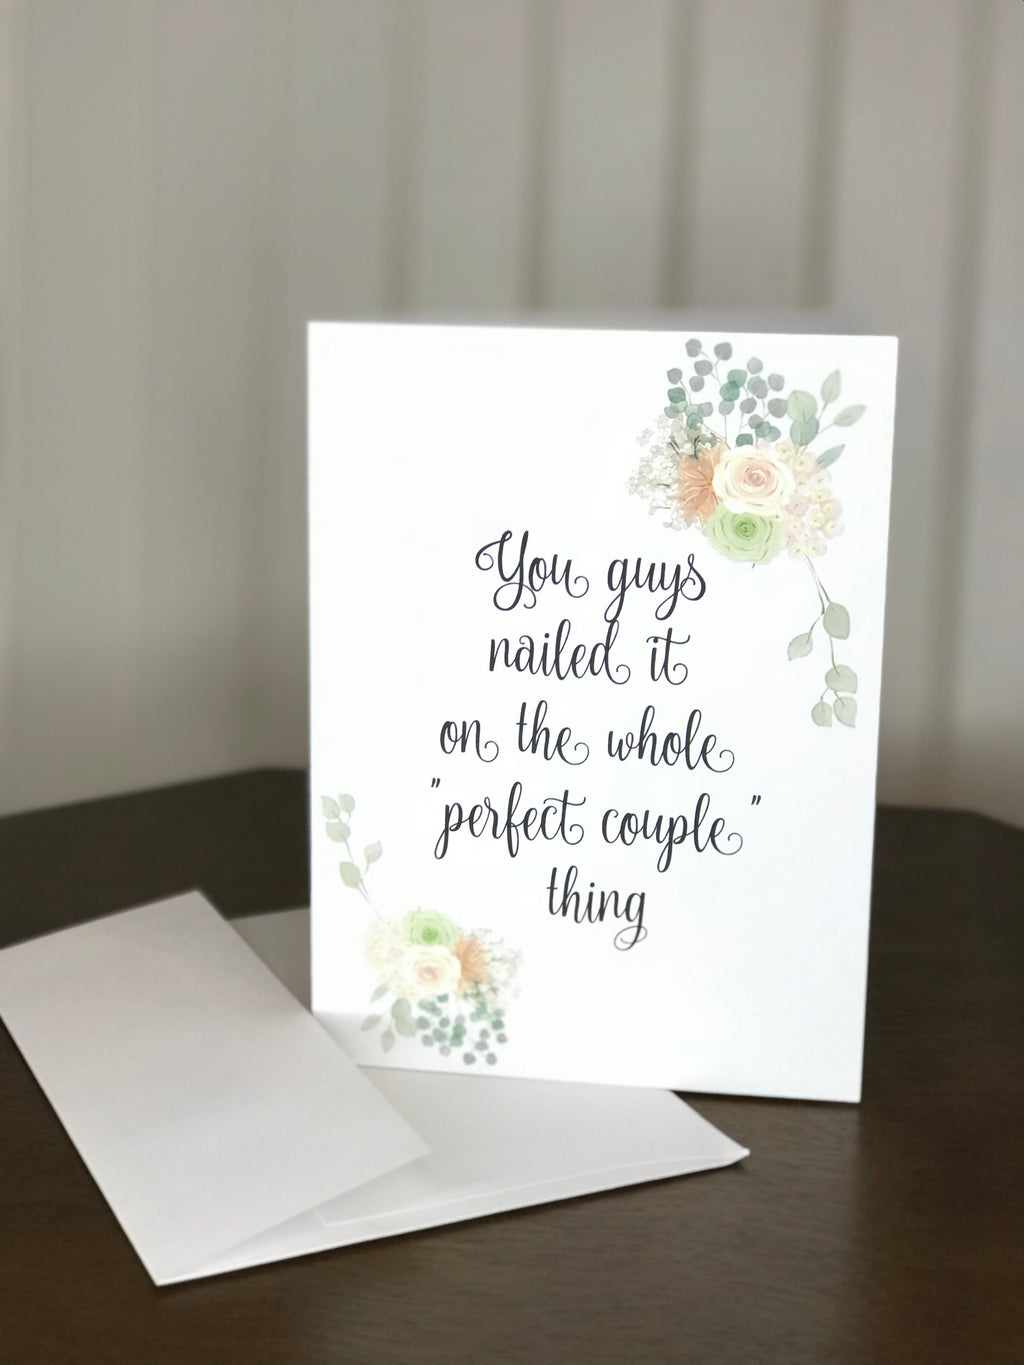 Funny bridal shower wedding card white card you guys really nailed it on the whole perfect couple thing greeting card floral design a6 with envelope